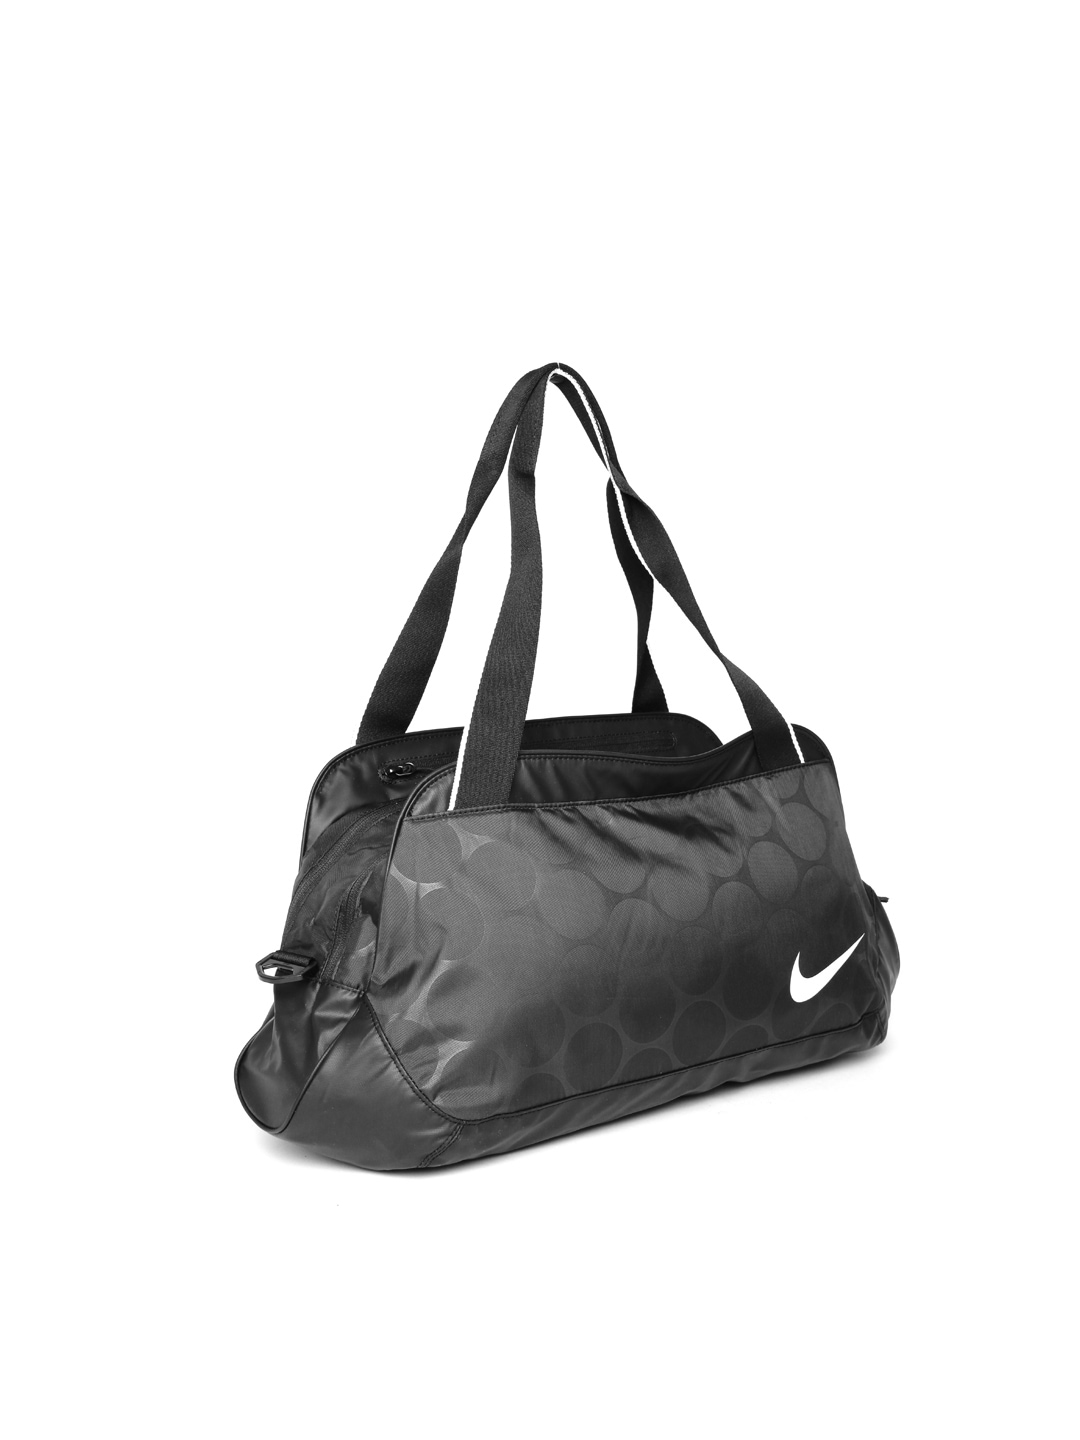 Wonderful  Nike Accessories Online Shop  Nike Brasilia Sports Bag Women  Black